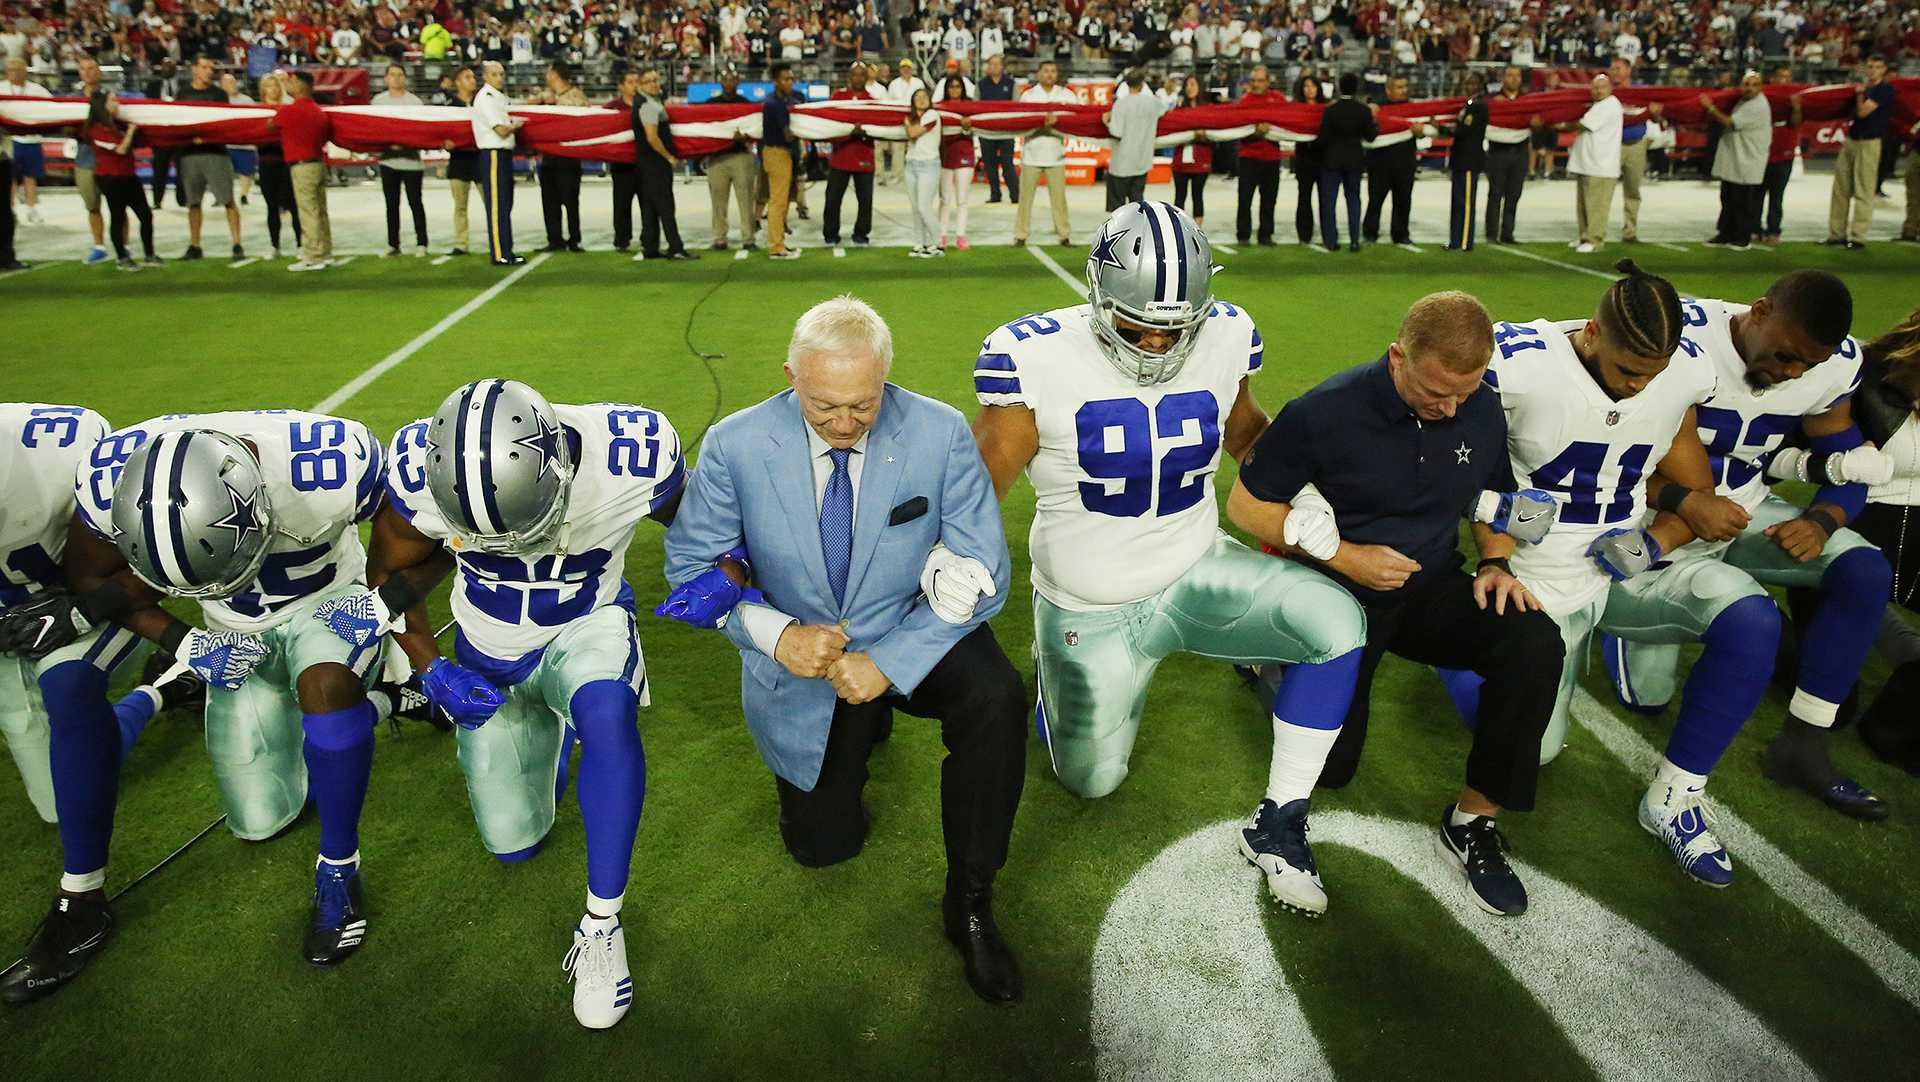 Dallas Cowboys players and staff including owner Jerry Jones and head coach Jason Garrett all take a knee before the singing of the National Anthem prior to the start of a game against the Arizona Cardinals at University of Phoenix Stadium Monday, Sept. 25, 2017 in Glendale, Ariz. (Vernon Bryant/The Dallas Morning News/TNS)   NO MAGAZINE SALES MANDATORY CREDIT; NO SALES; INTERNET USE BY TNS CONTRIBUTORS ONLY